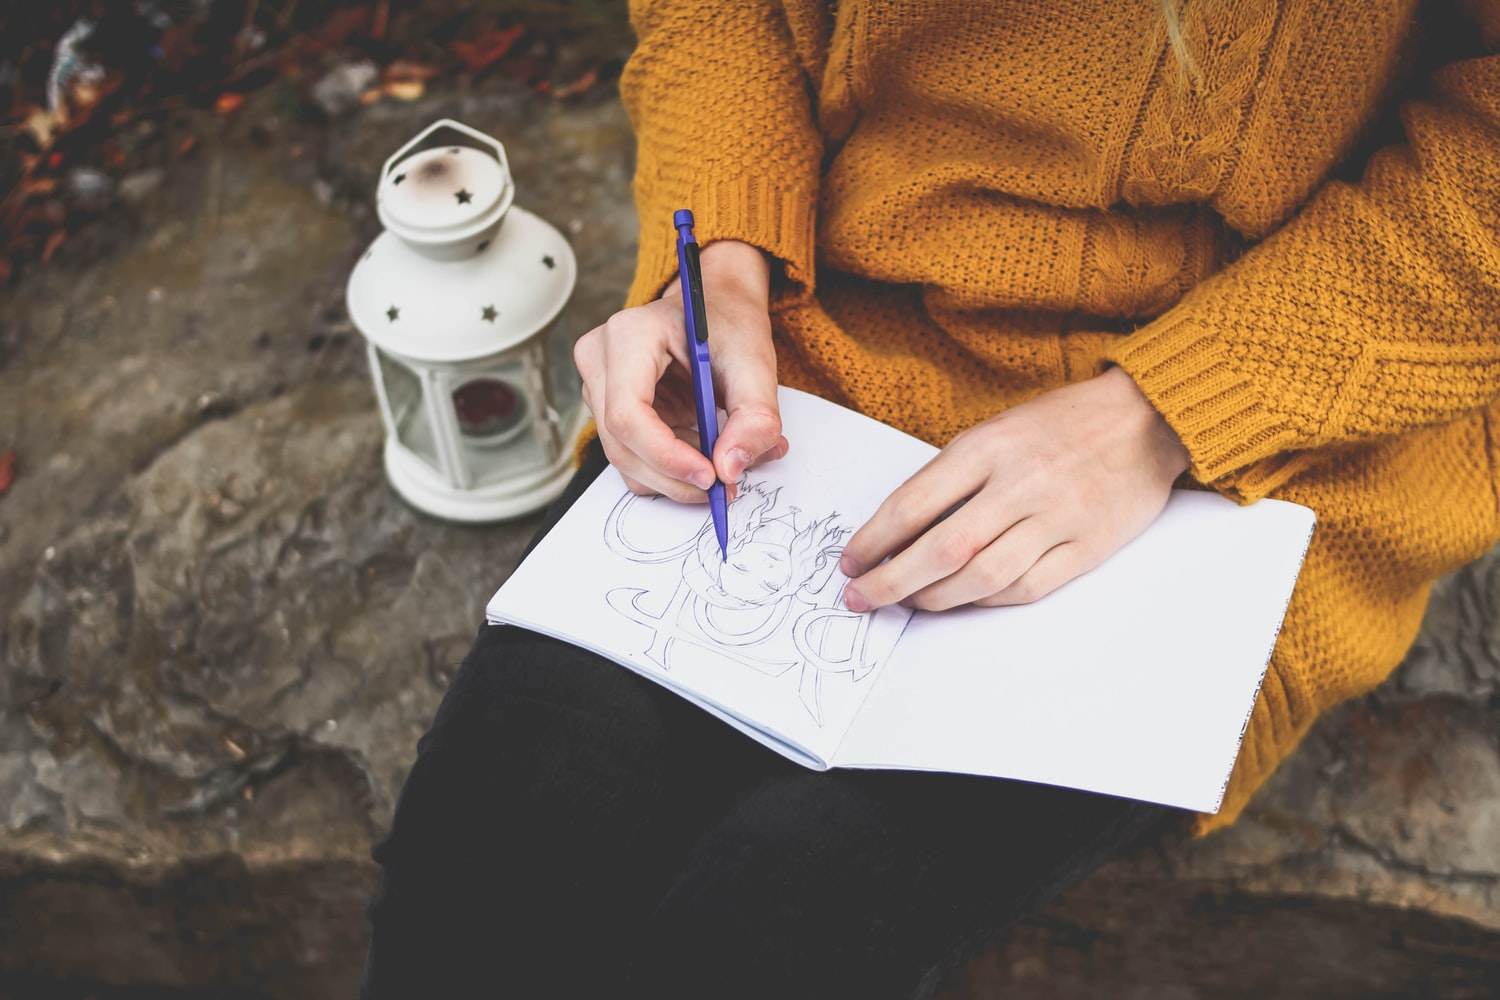 How To Improve At Bullet Journaling